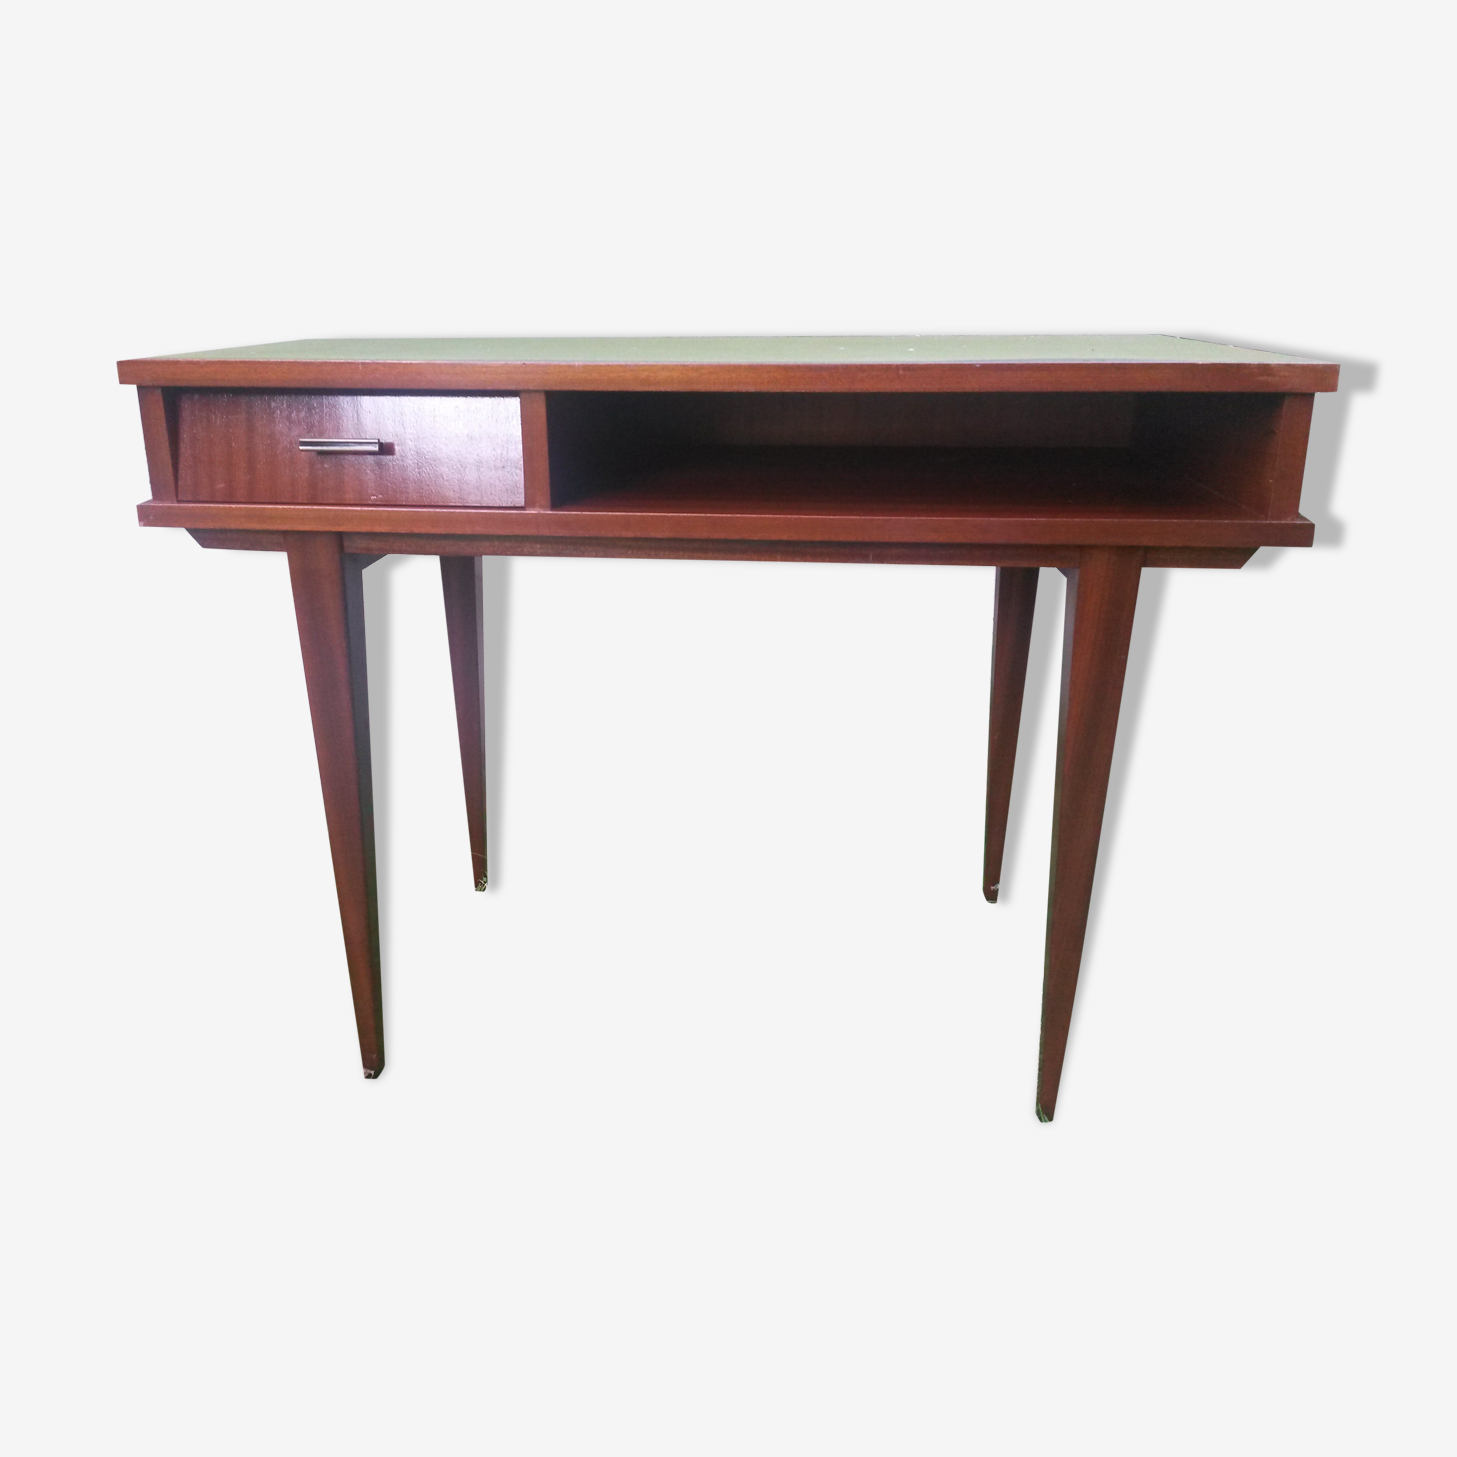 Table vintage d'appoint